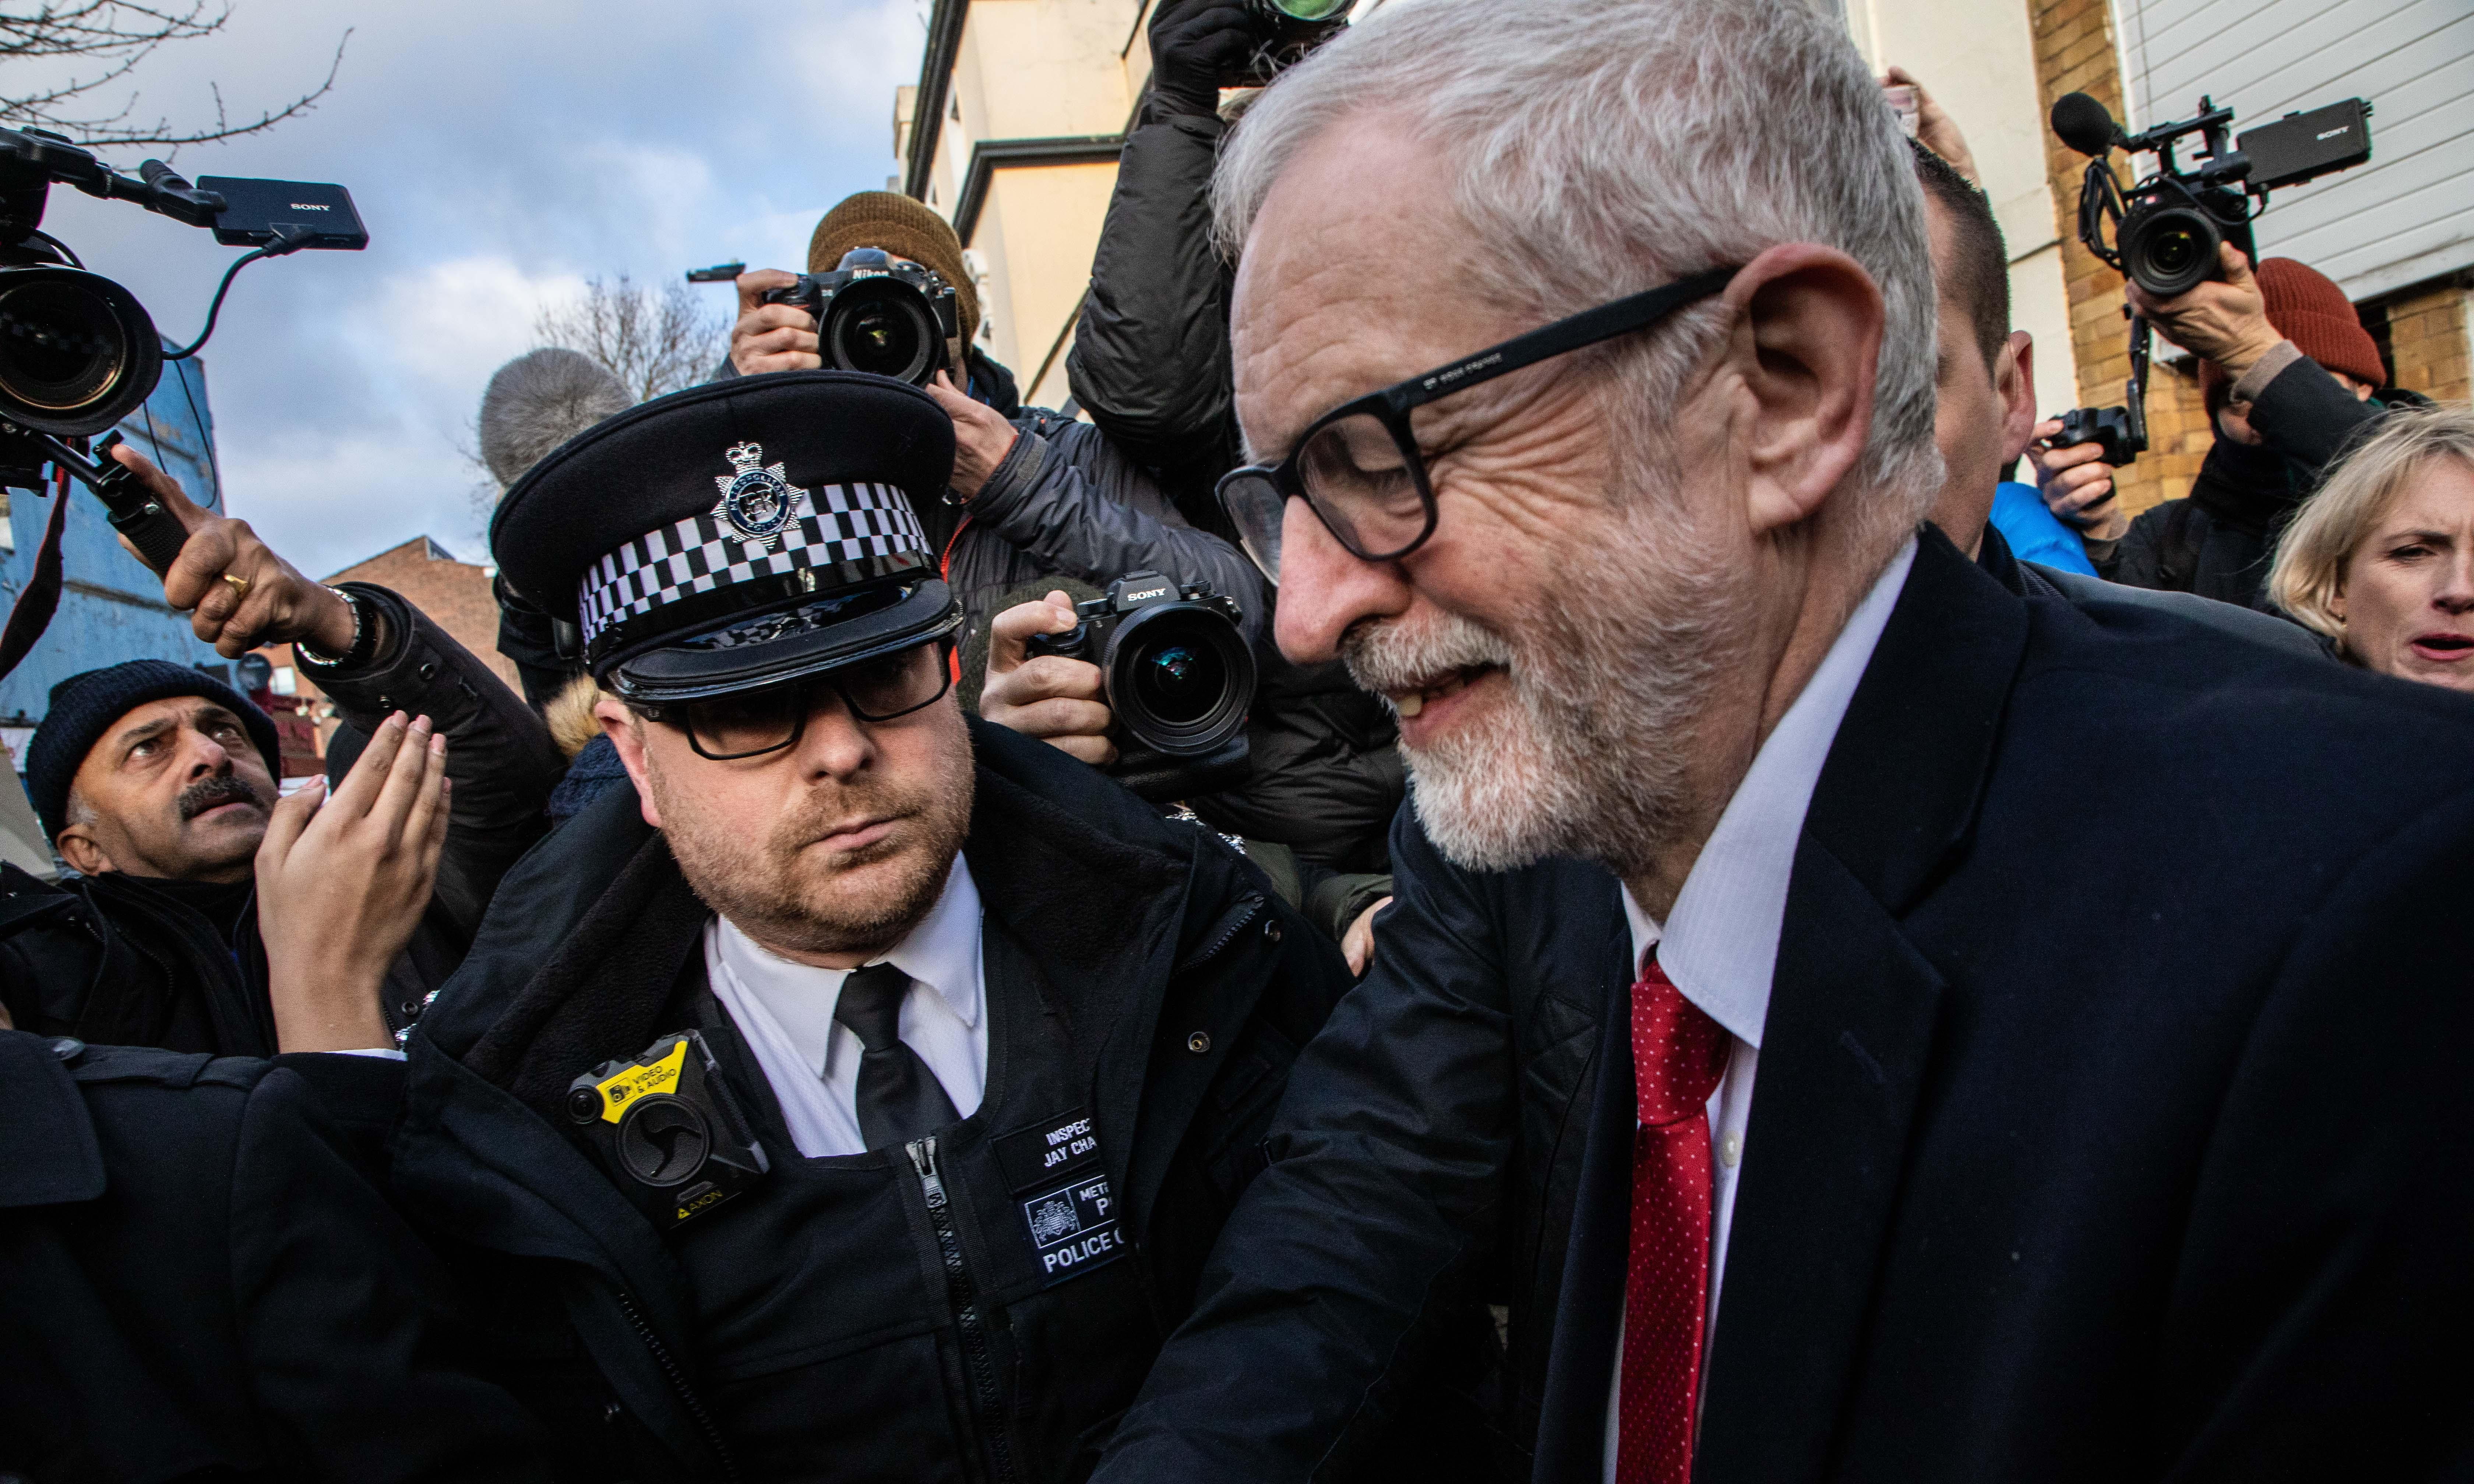 Jeremy Corbyn 'very sad' at election defeat but feels proud of manifesto